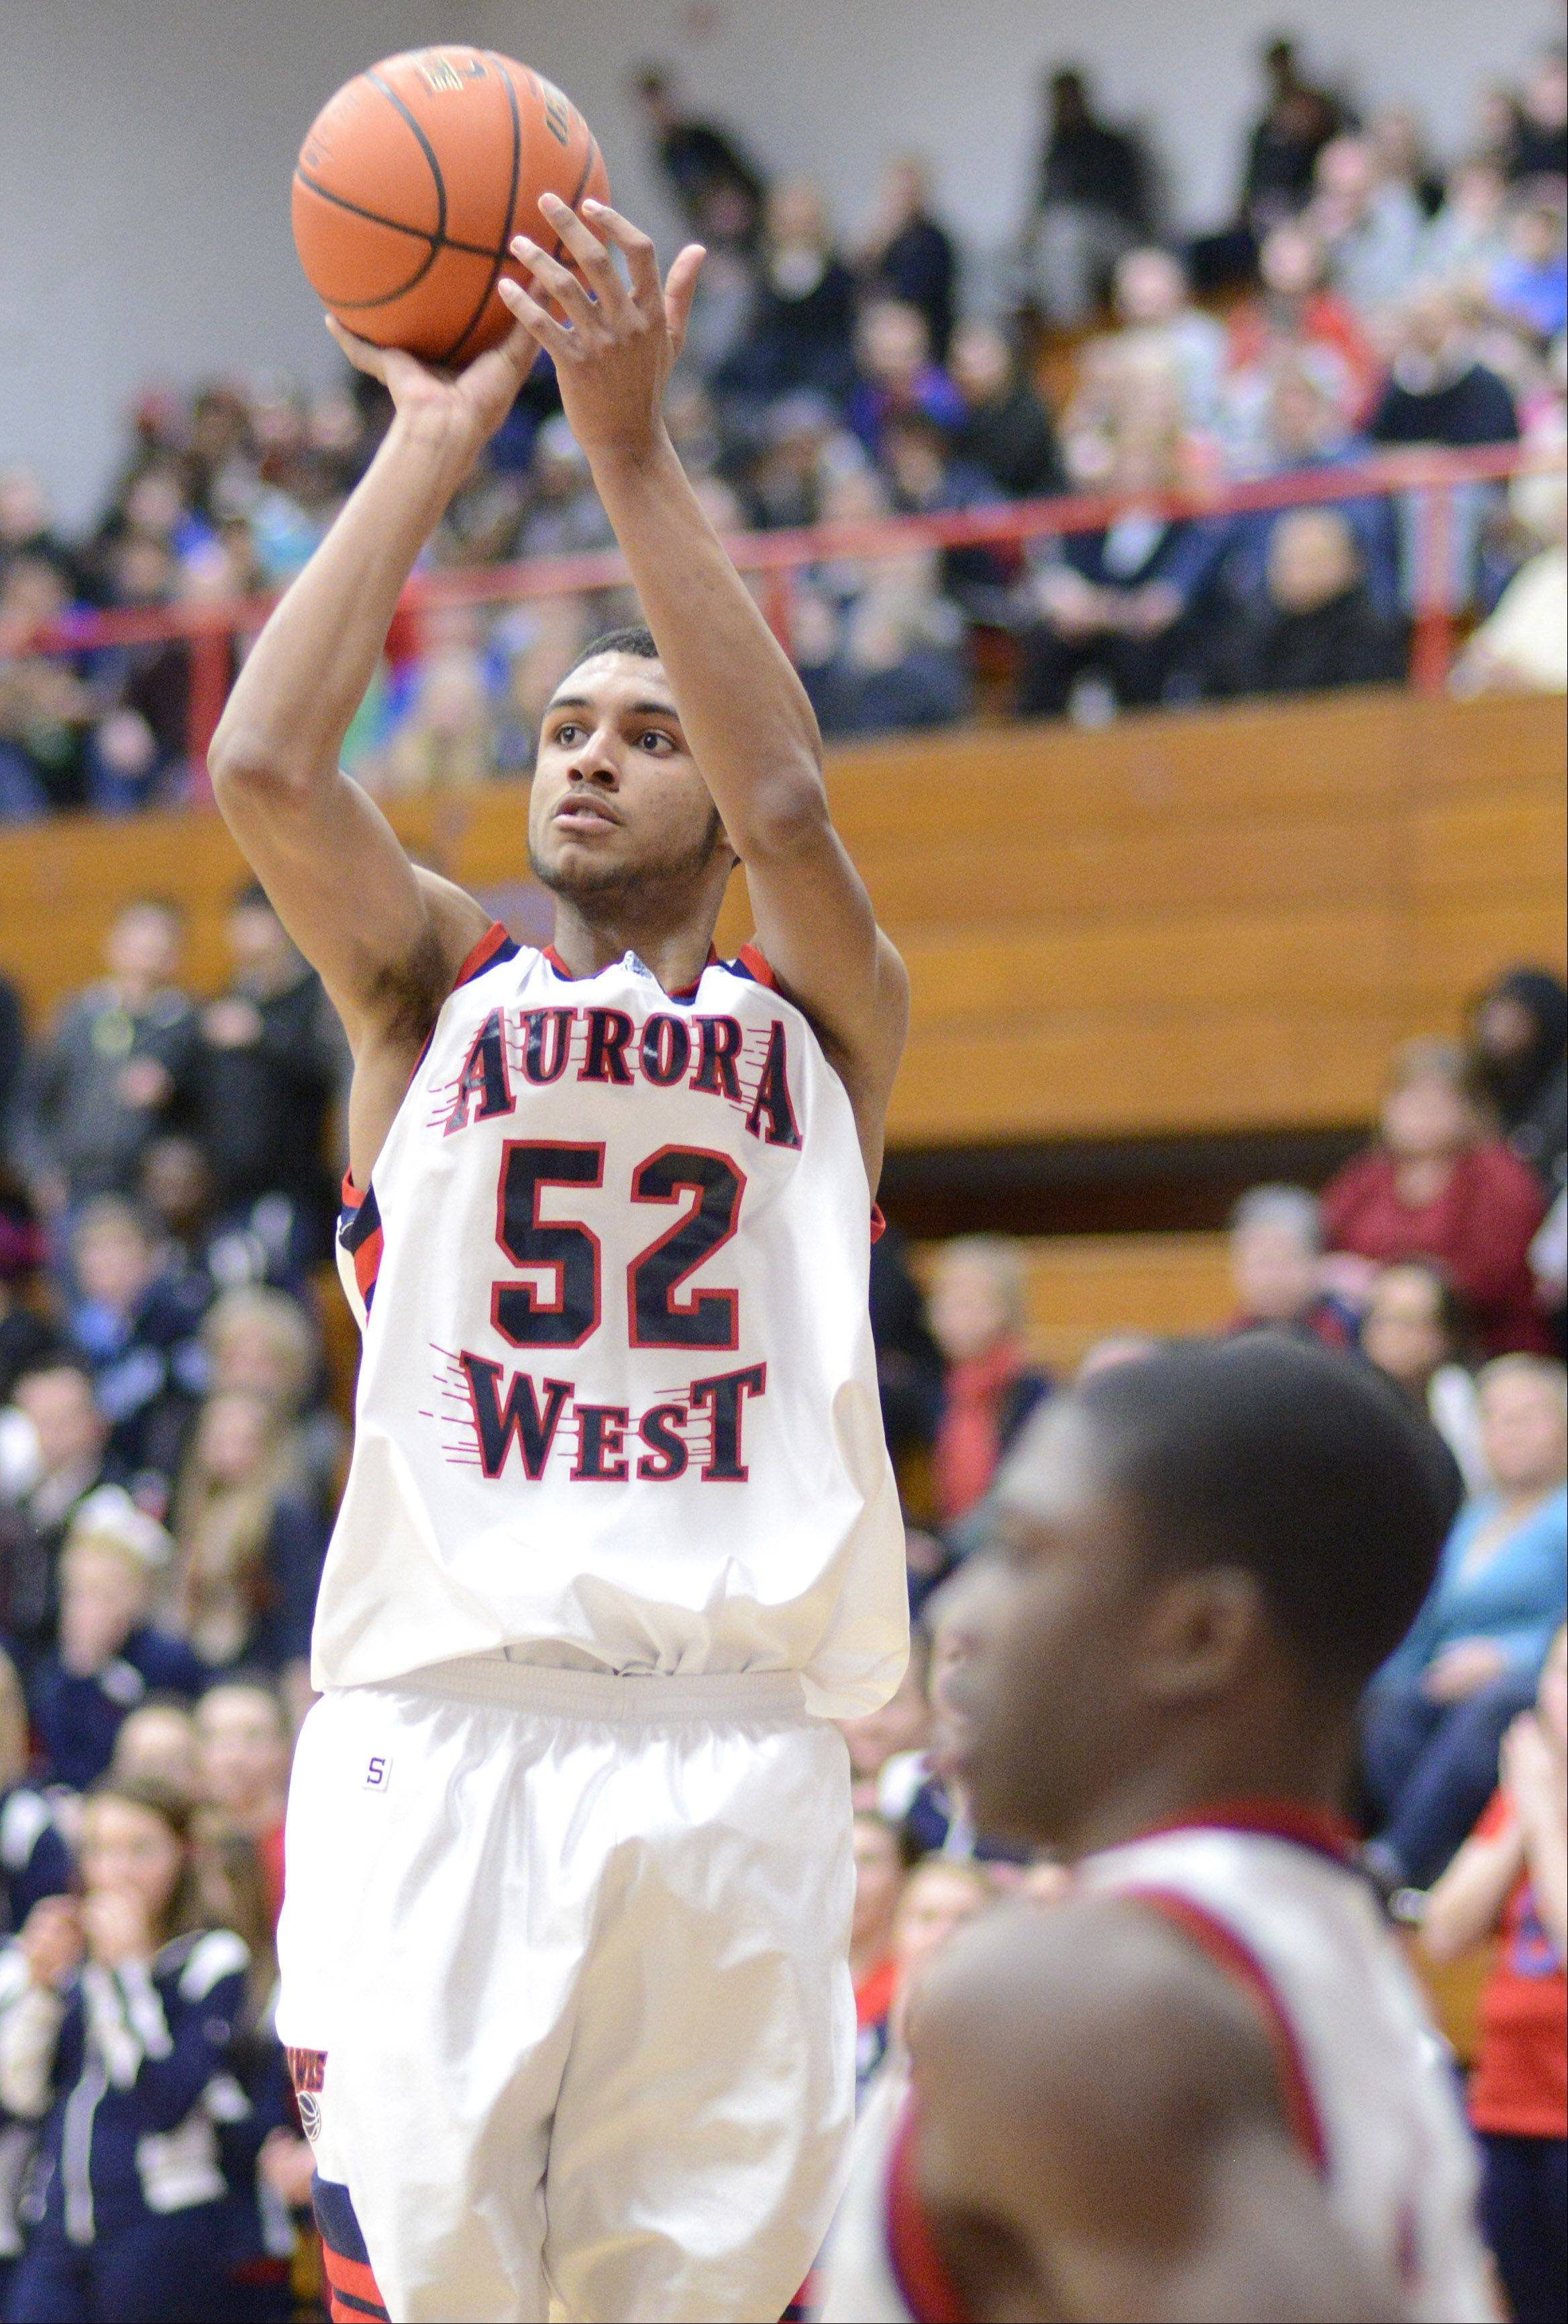 West Aurora's Joshua McAuley sinks a shot in the third quarter.